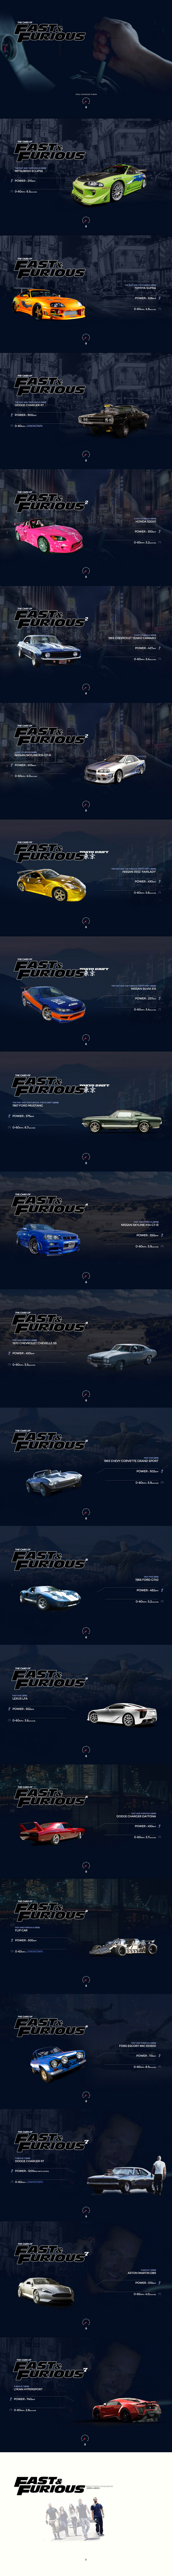 Top 21 Cars from the Fast & Furious Franchise